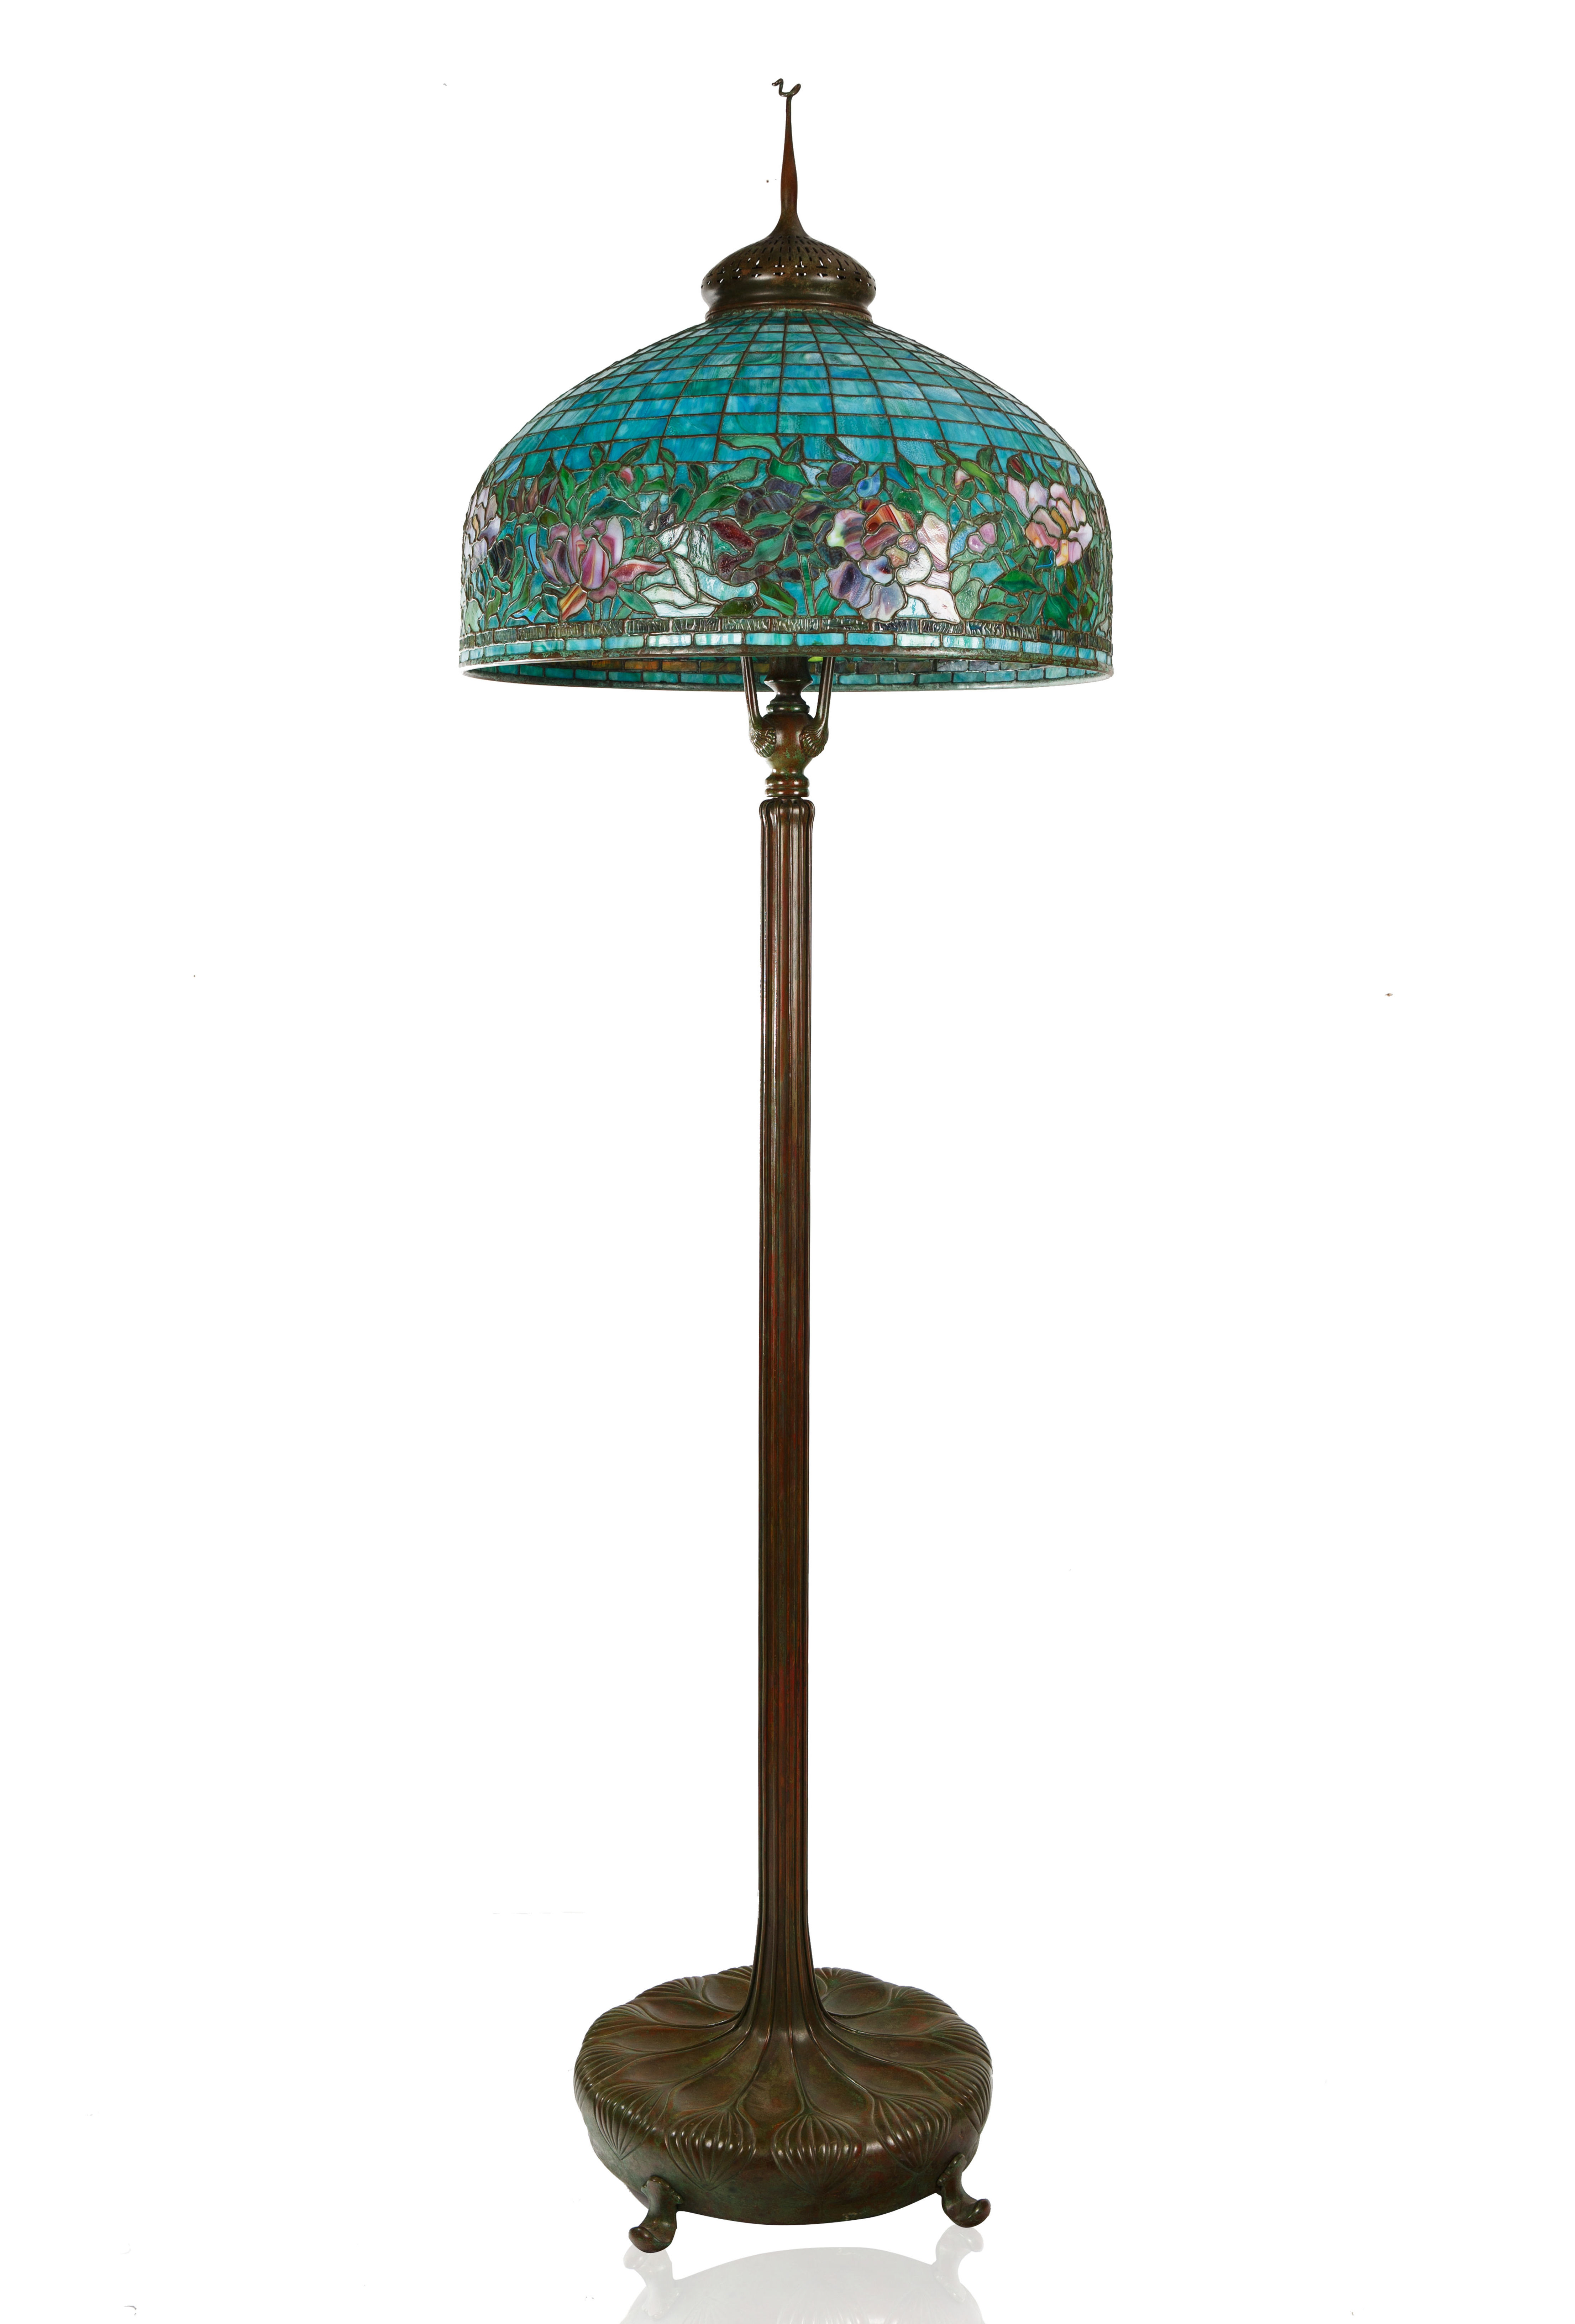 A MODERN TIFFANY & CO. STYLE STAINED GLASS 'PEONY' FLOOR LAMP